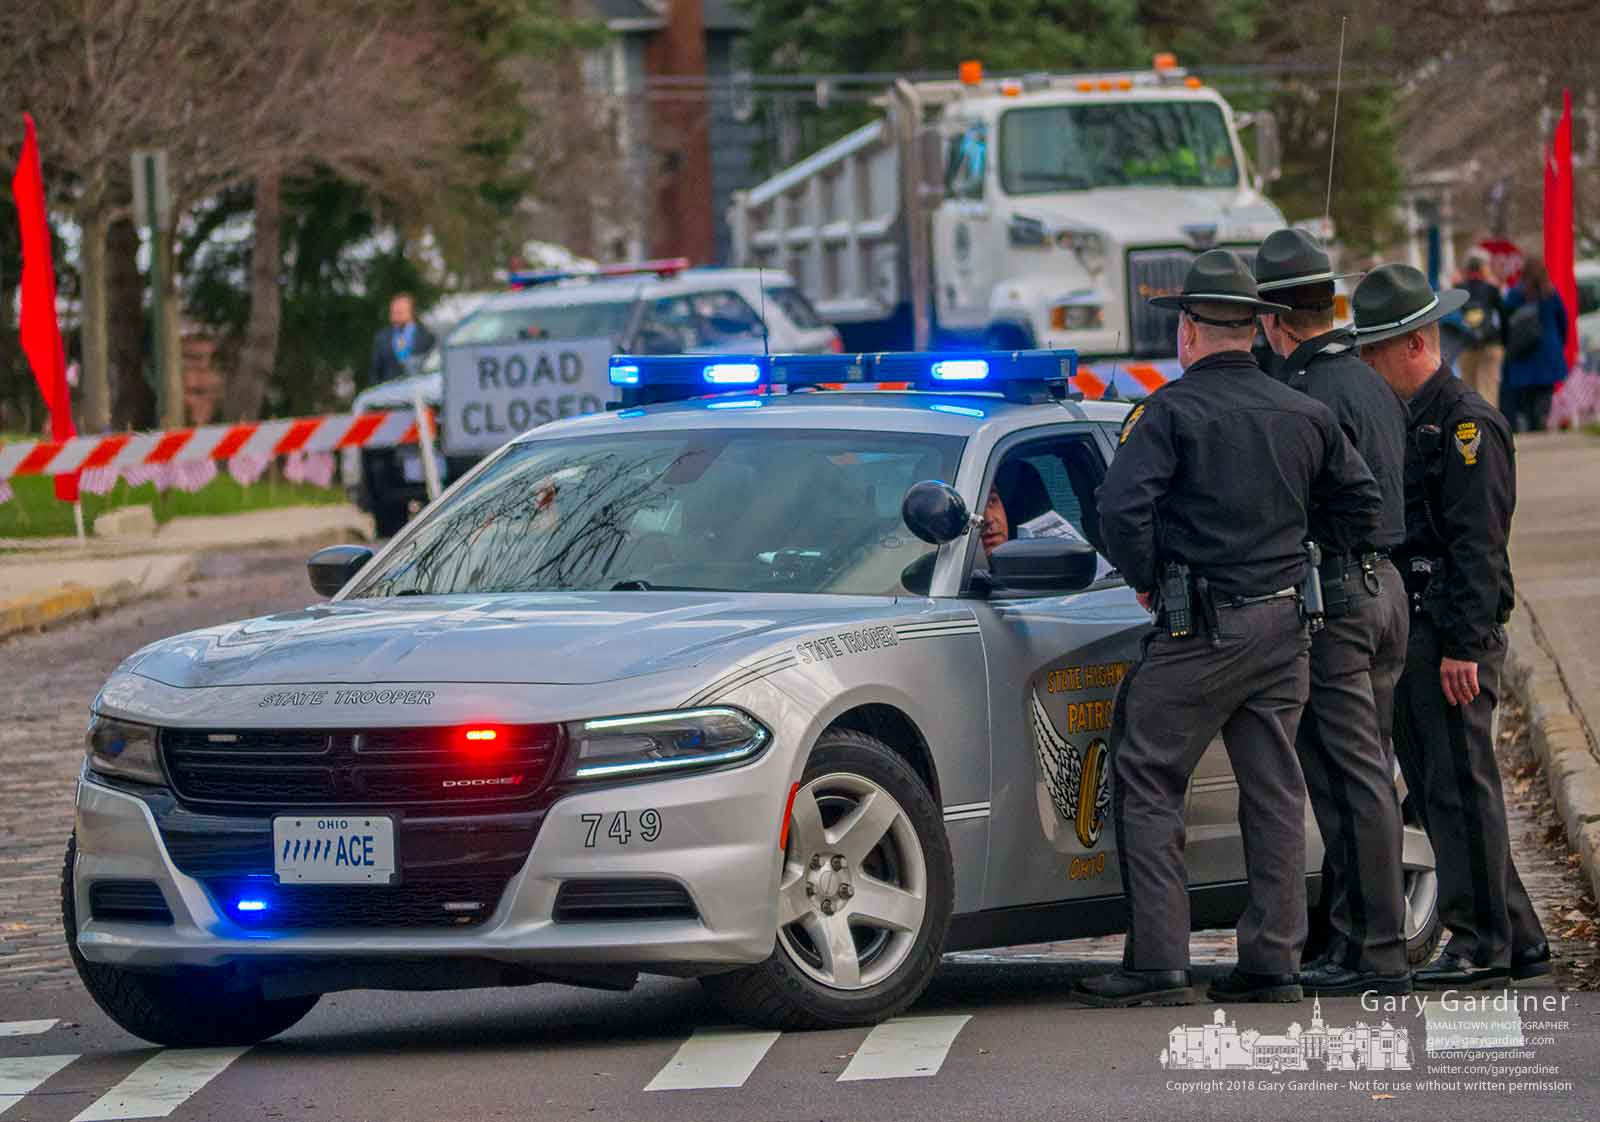 Ohio State Patrol troopers block Grove Street at Main Street as a security barrier near where Ohio Gov. John Kasich will give his final State of the State speech on the Otterbein University campus. My Final Photo for March 6, 2018.